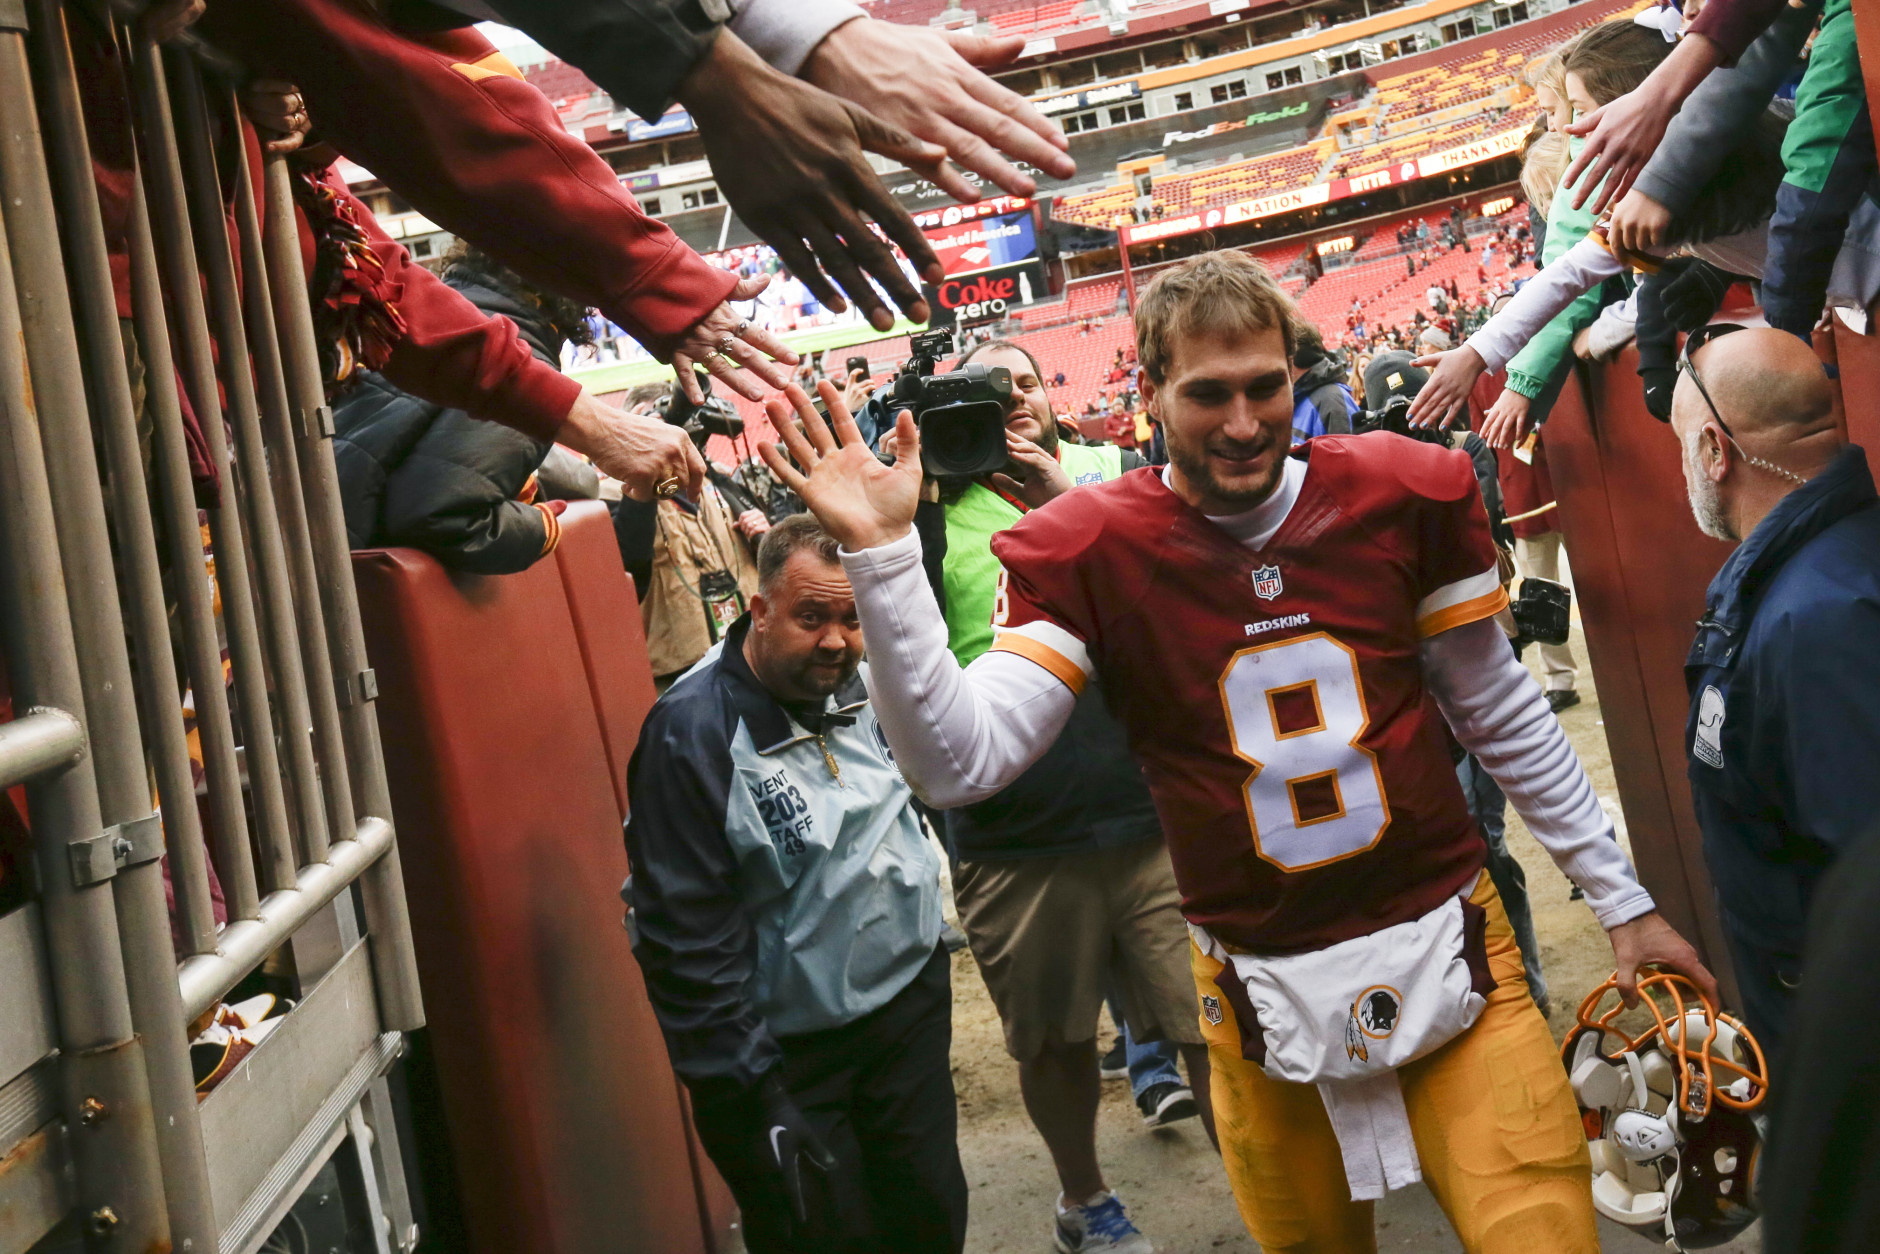 Washington Redskins quarterback Kirk Cousins (8) is greeted by fans as he leaves the field after an NFL football game against the Buffalo Bills in Landover, Md., Sunday, Dec. 20, 2015. The Washington Redskins defeated the Buffalo Bills 35-25. (AP Photo/Jacquelyn Martin)